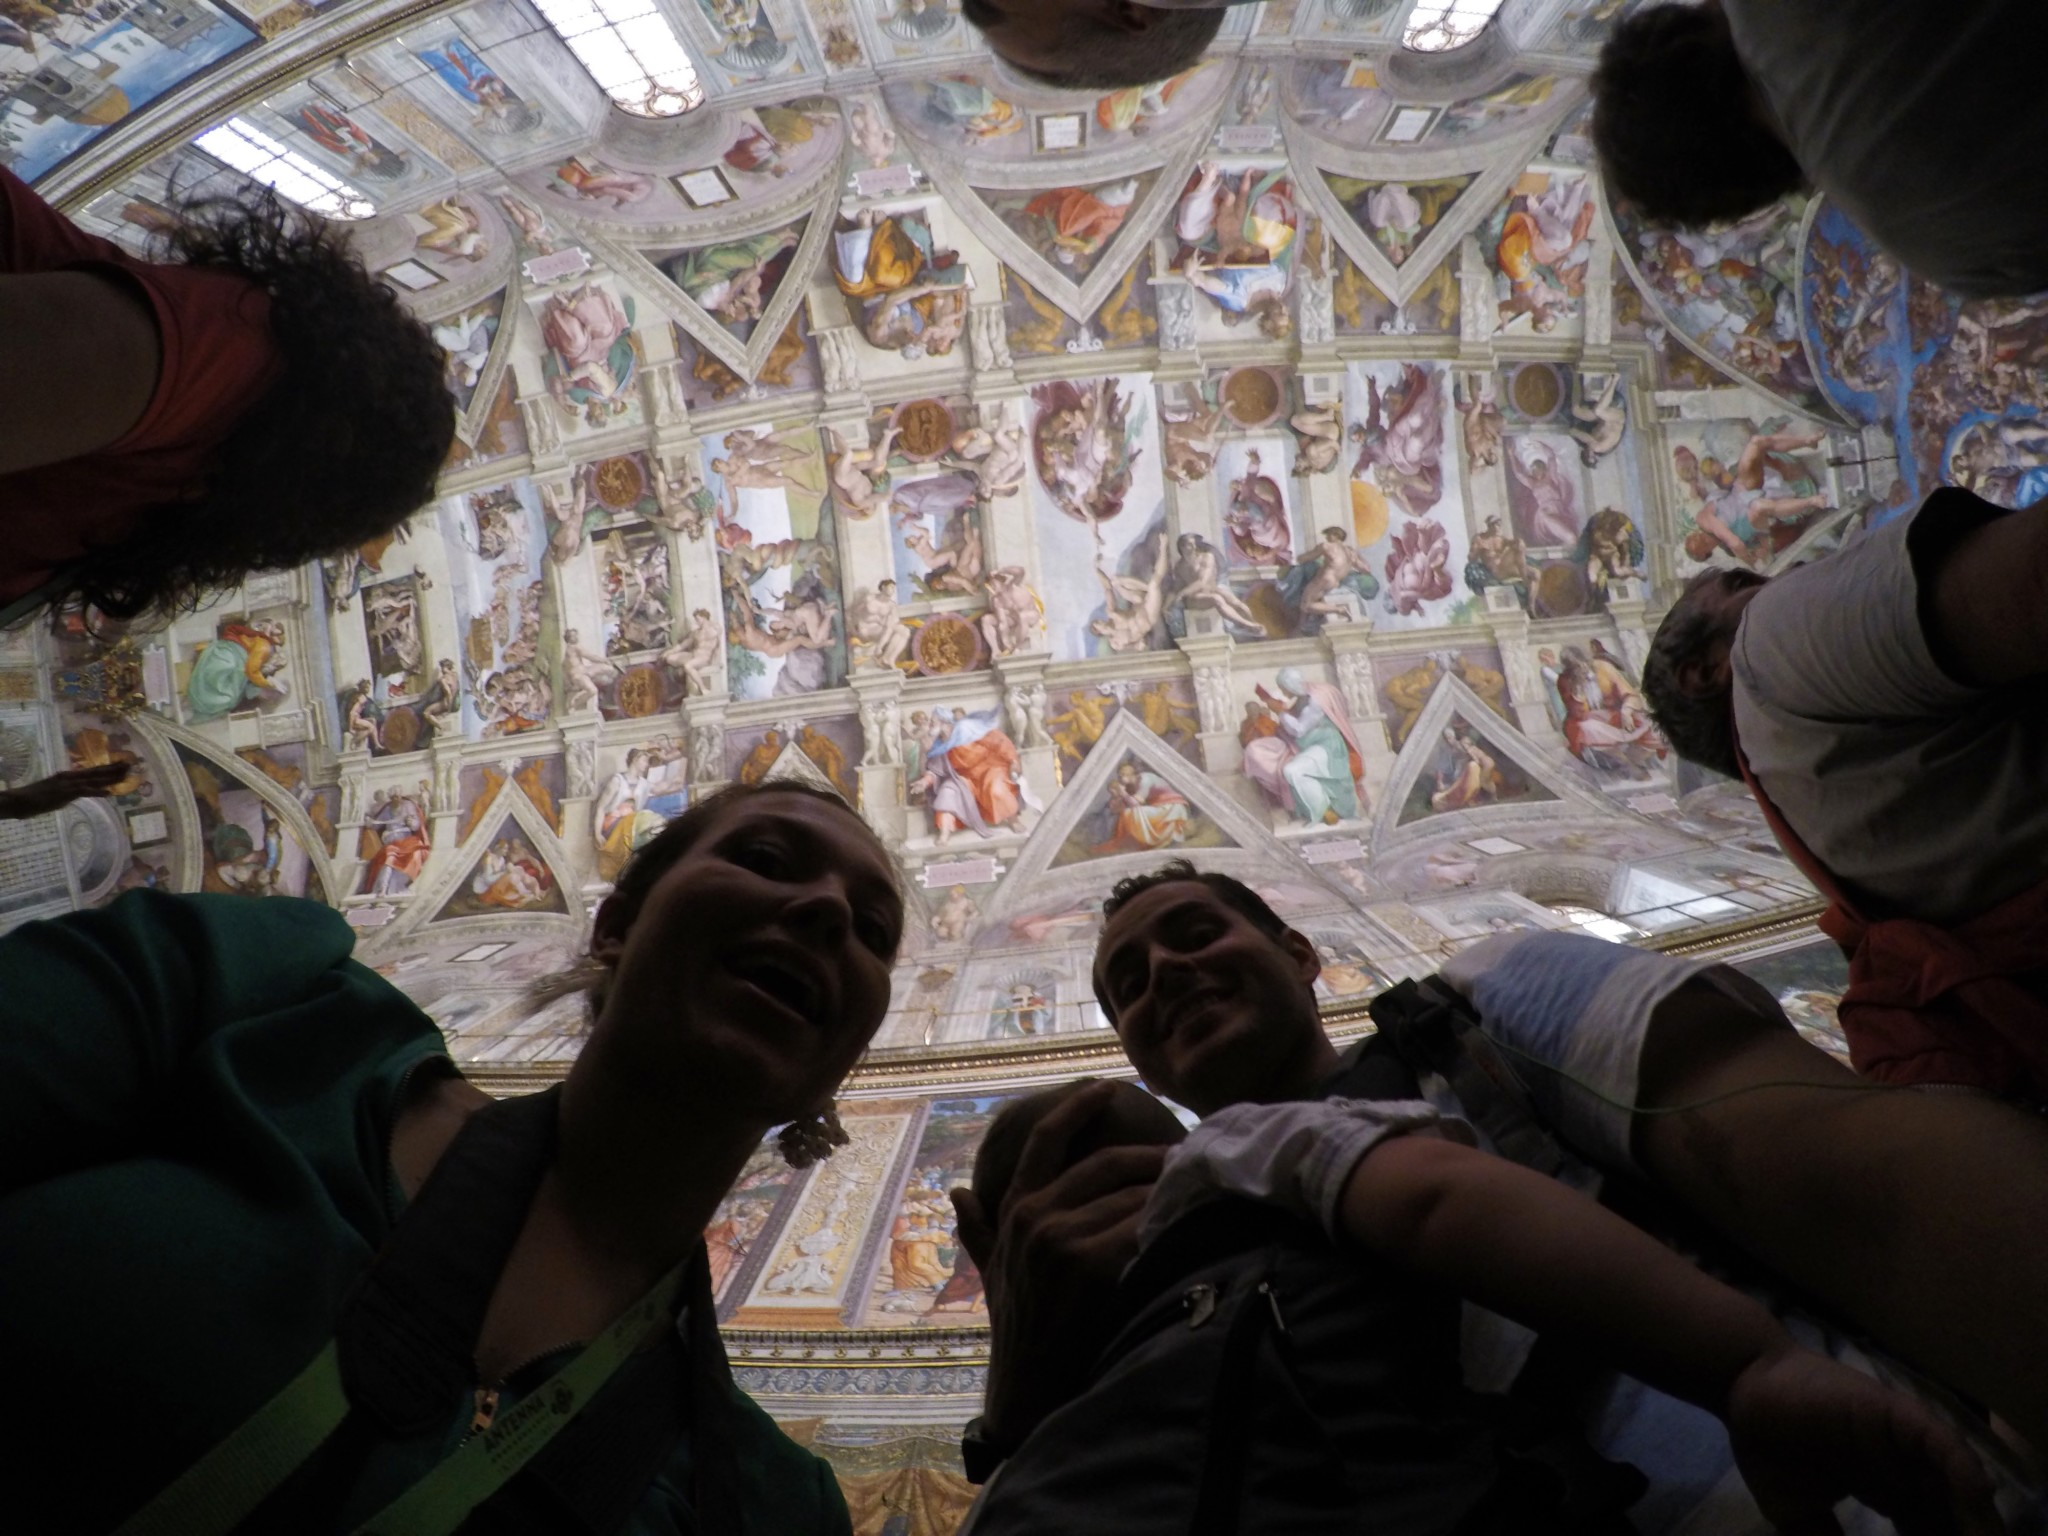 Sistine Chapel│Crowded, Chaotic but Worth a Visit